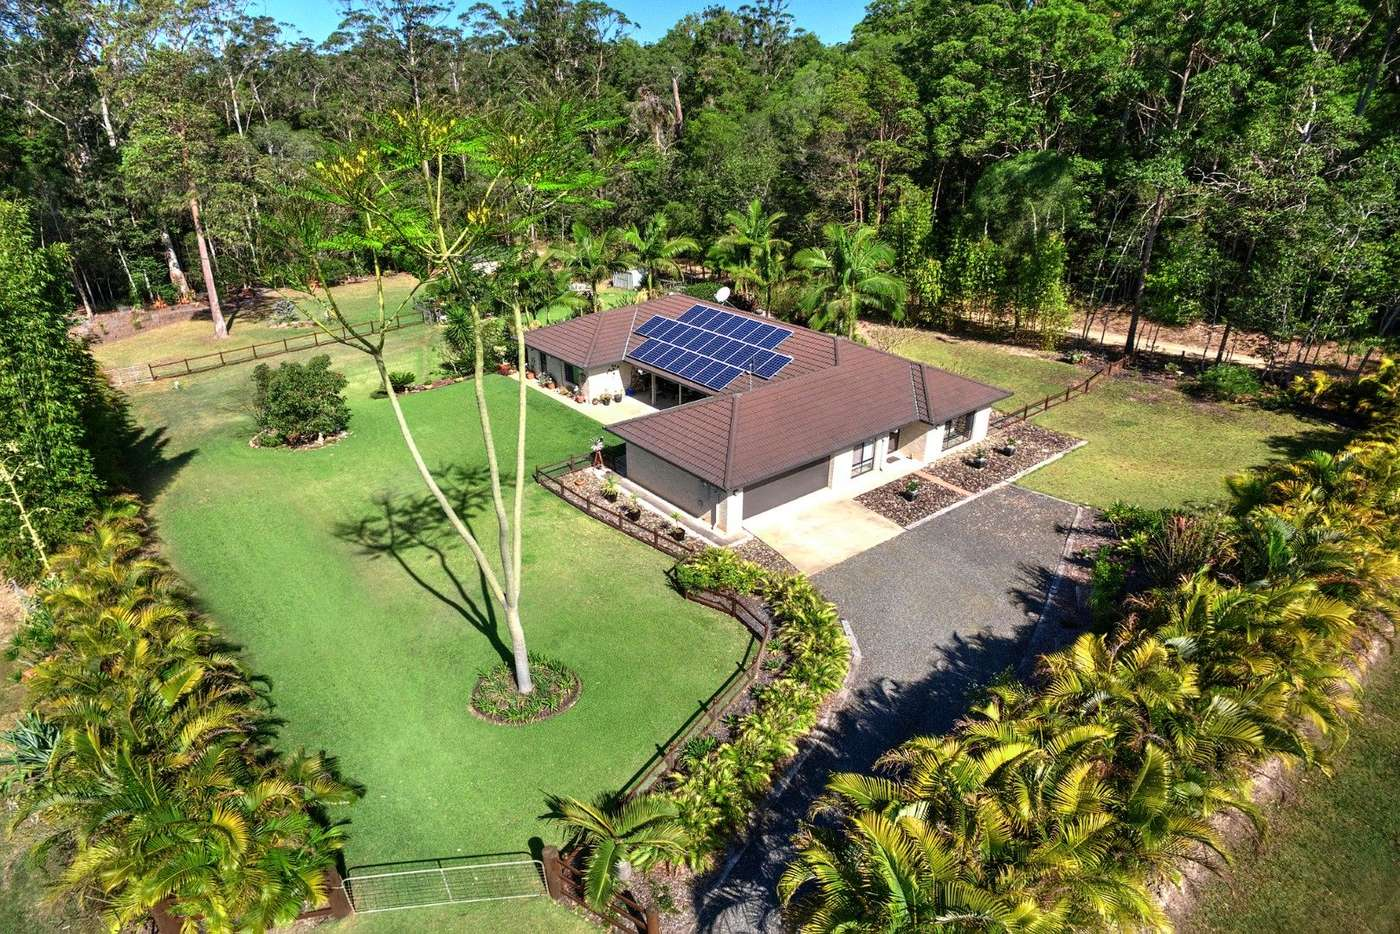 Main view of Homely house listing, 2 Belwood Place, Pomona QLD 4568